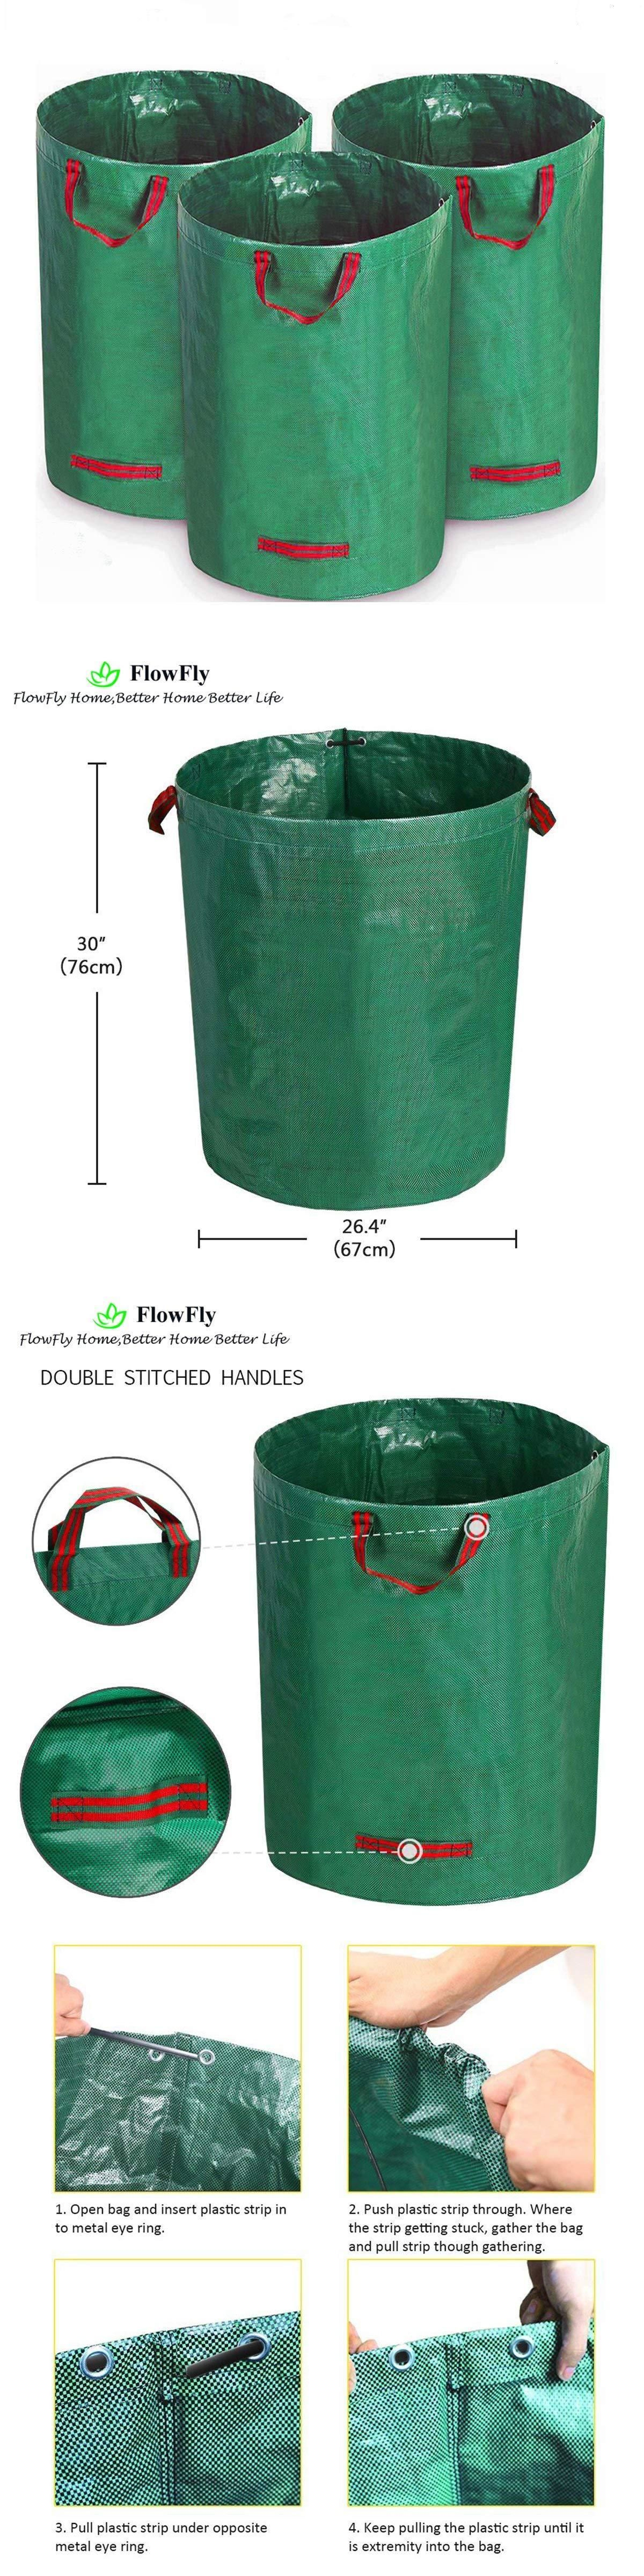 Garden Waste Bags 181024 Garden Waste Bag Patio Yard Lawn Leaf Container Collapsible 3 Pack 72 Gallons Buy It Now Only Garden Waste Bags Garden Tools Garden Bags